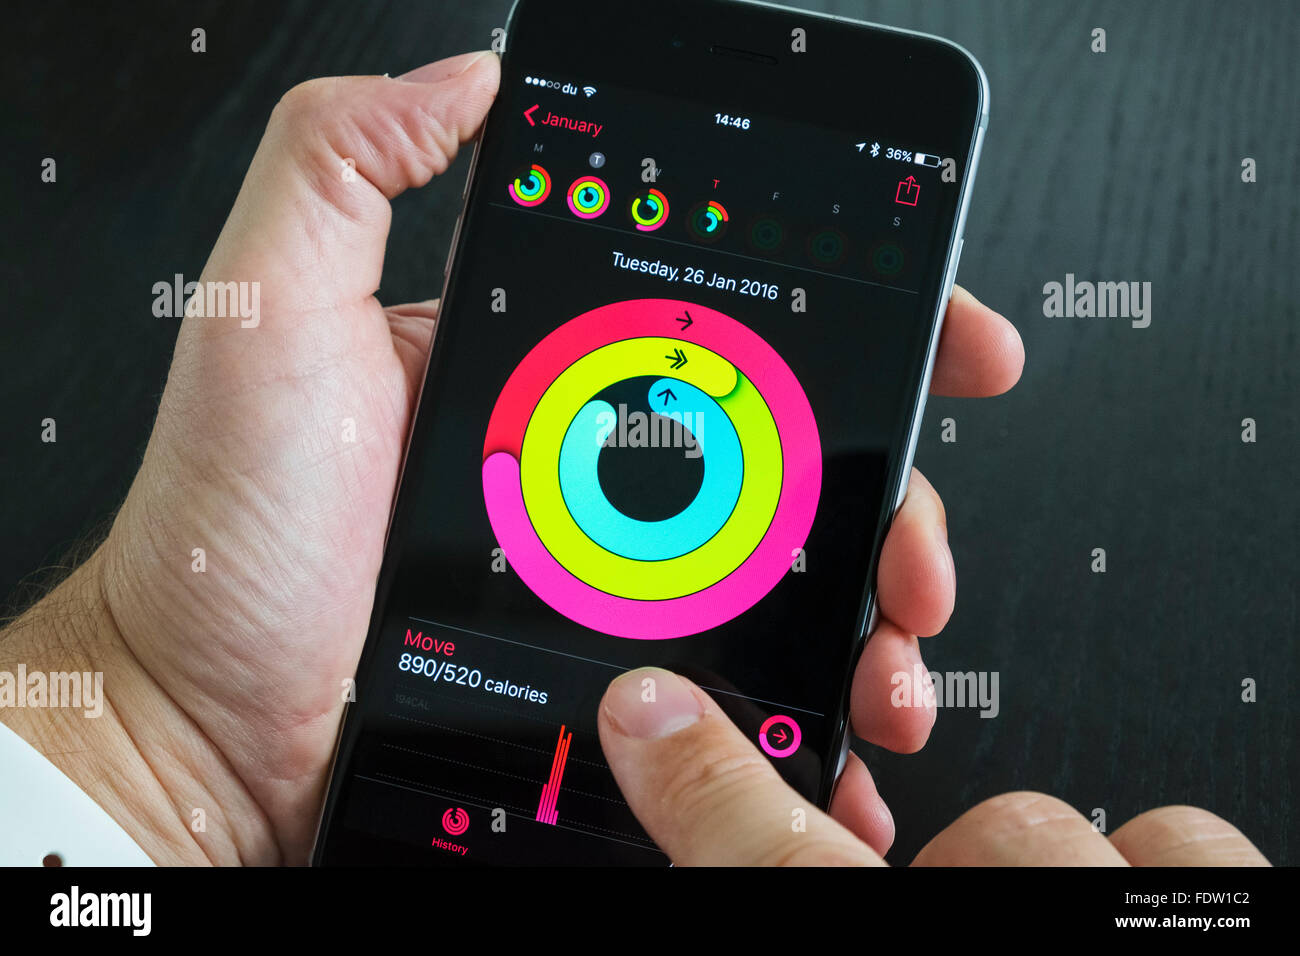 Health app measuring daily activity on iPhone 6 Plus smart phone - Stock Image